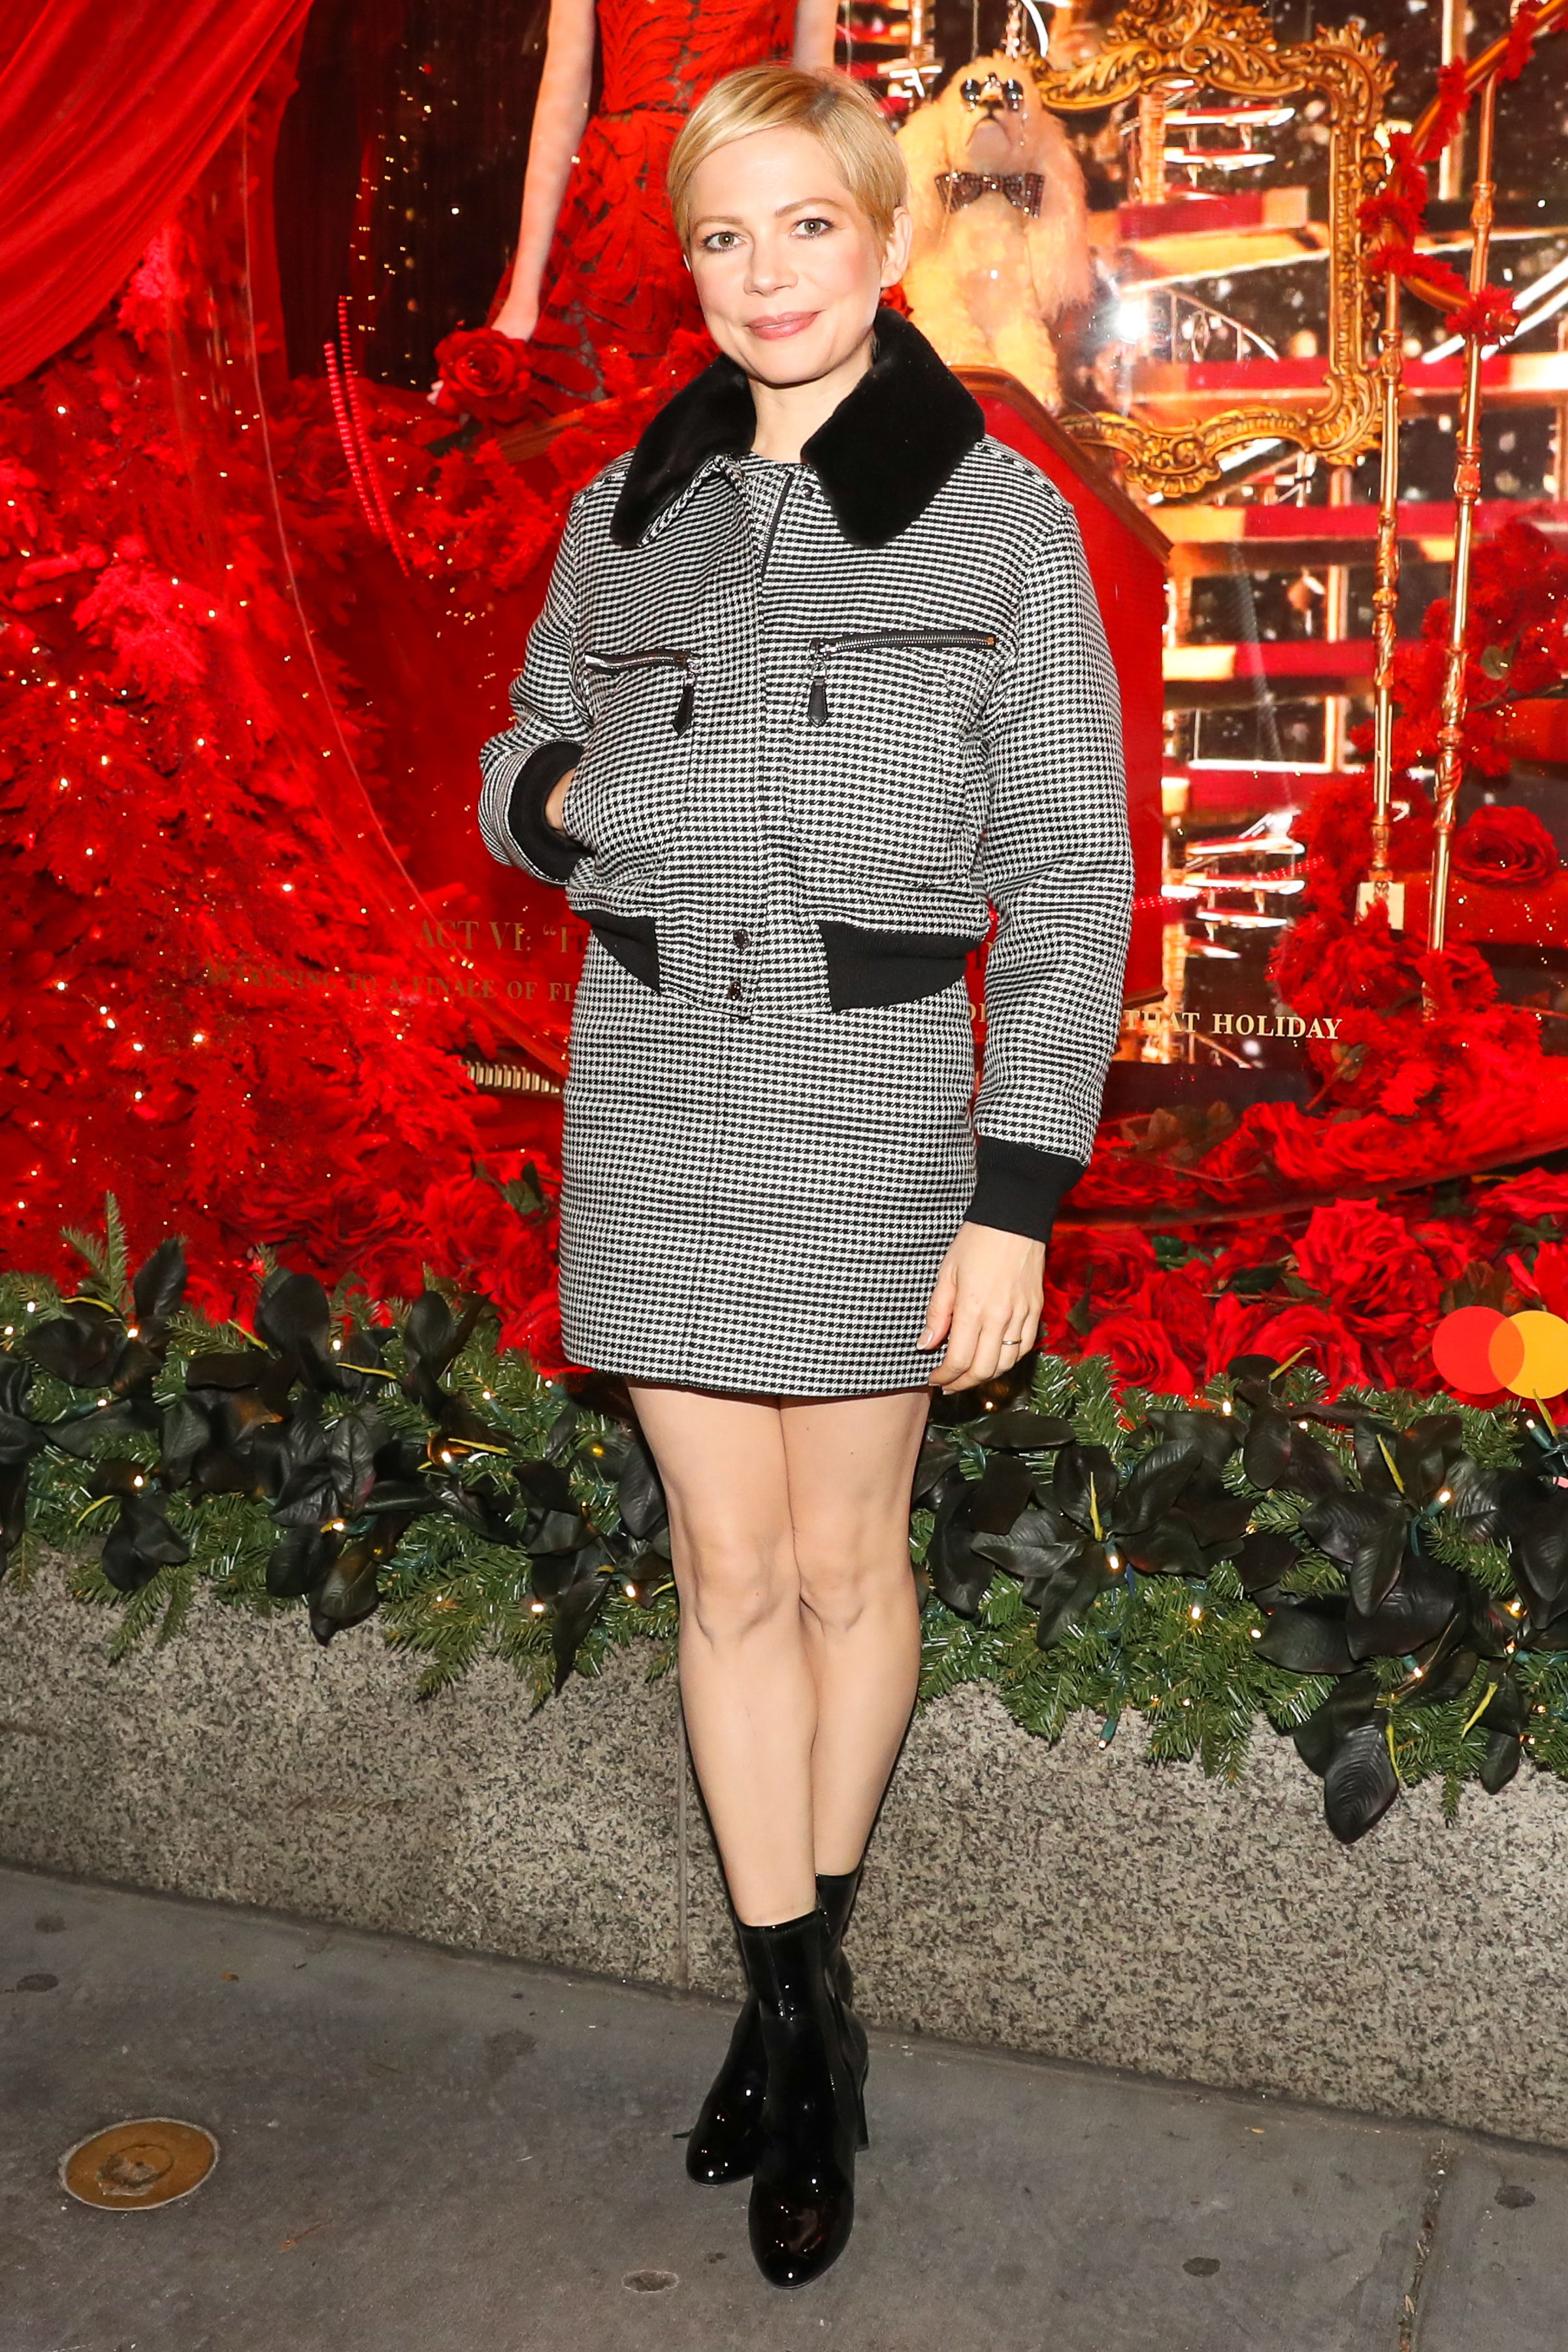 Michelle Williams'Theater of Dreams' holiday windows and light show, New York, USA - 19 Nov 2018